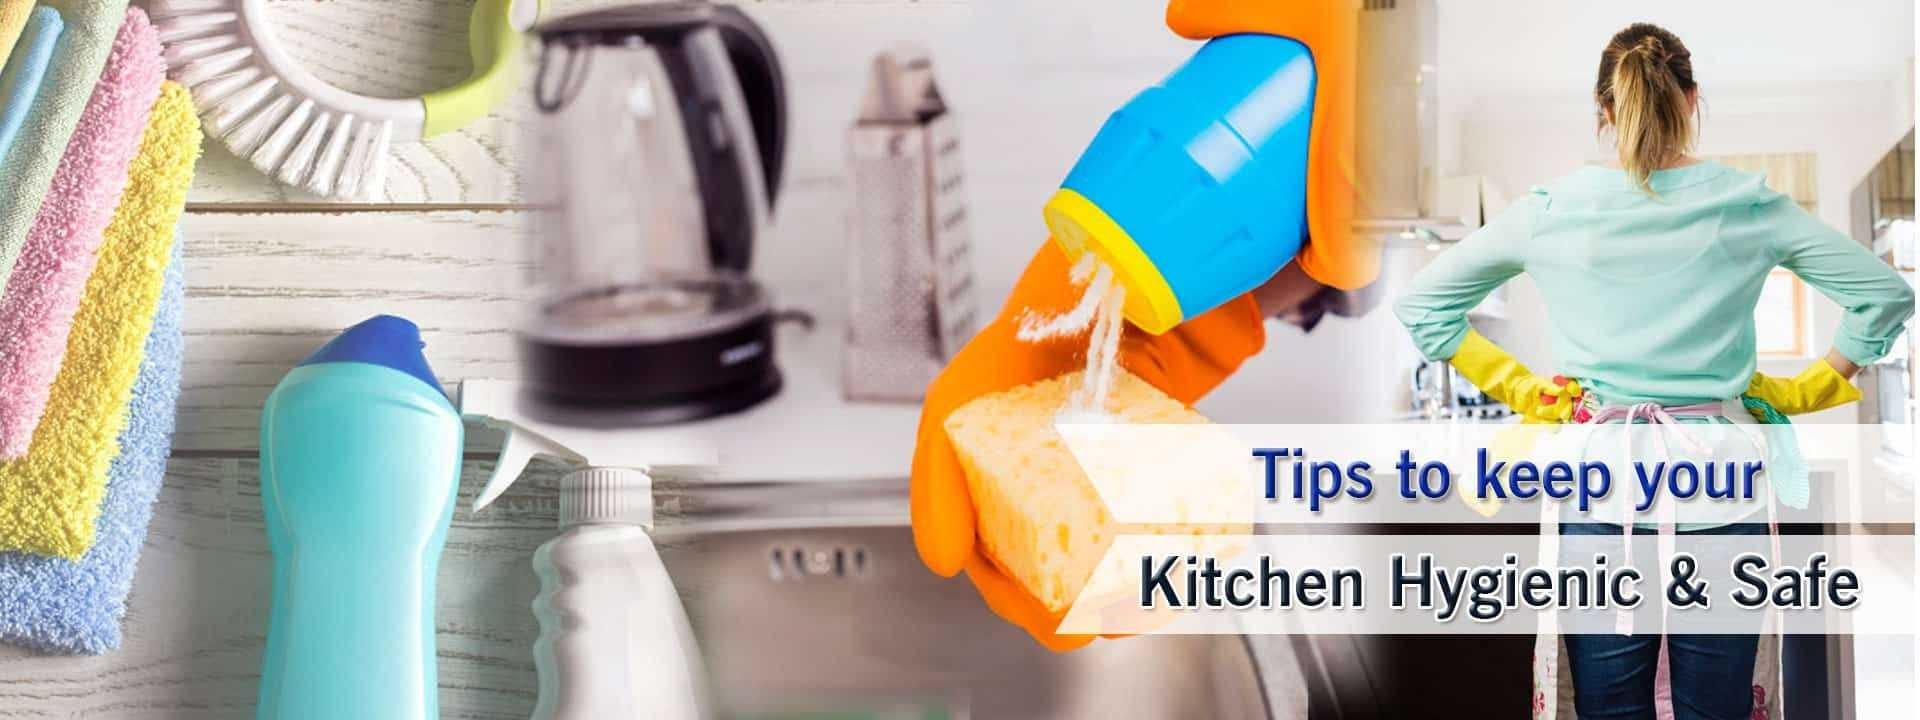 Tips To Keep Your Kitchen Hygienic And Safe